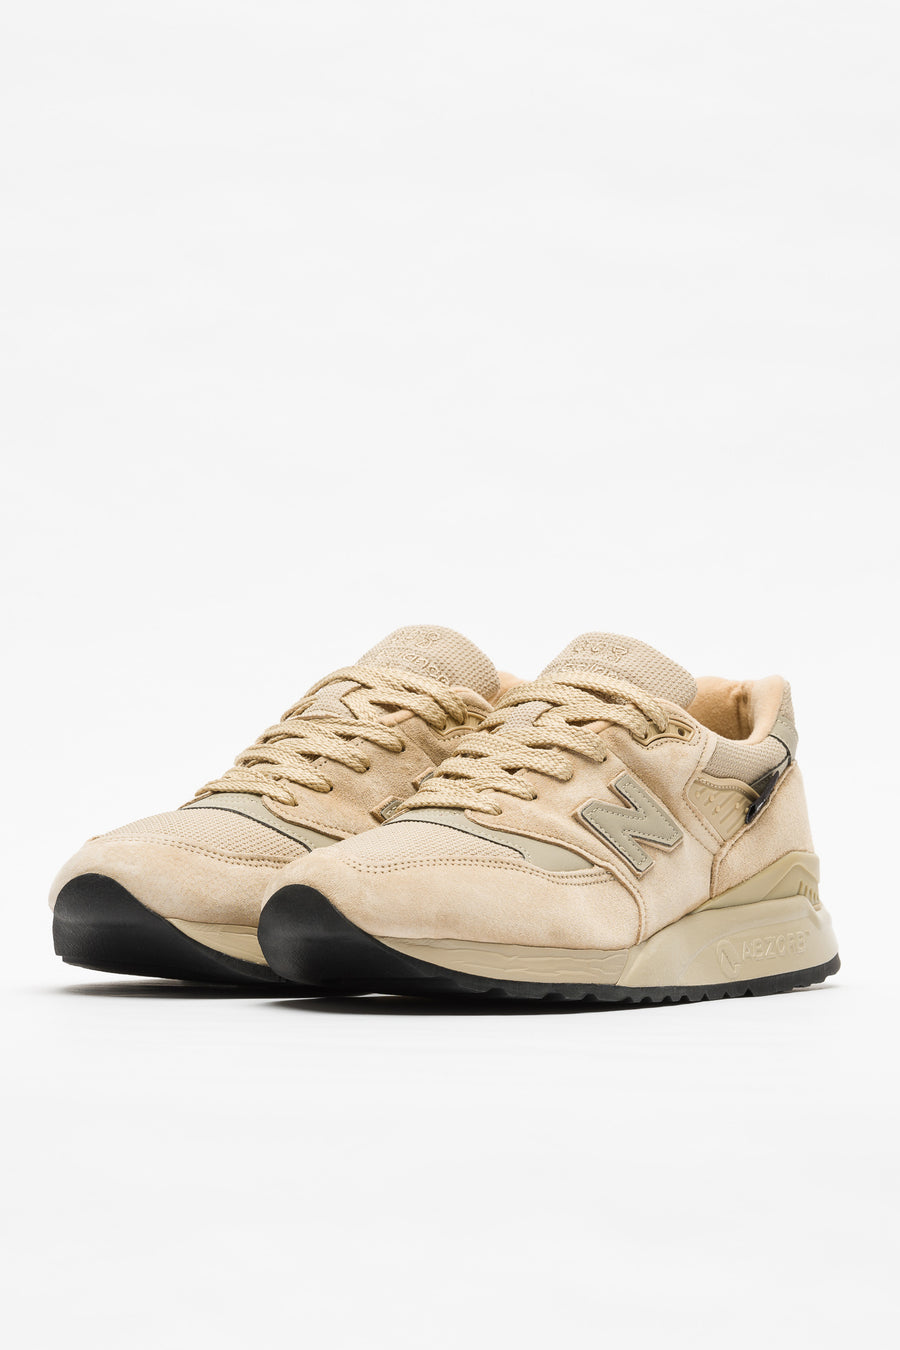 New Balance M998BLC in Cream - Notre